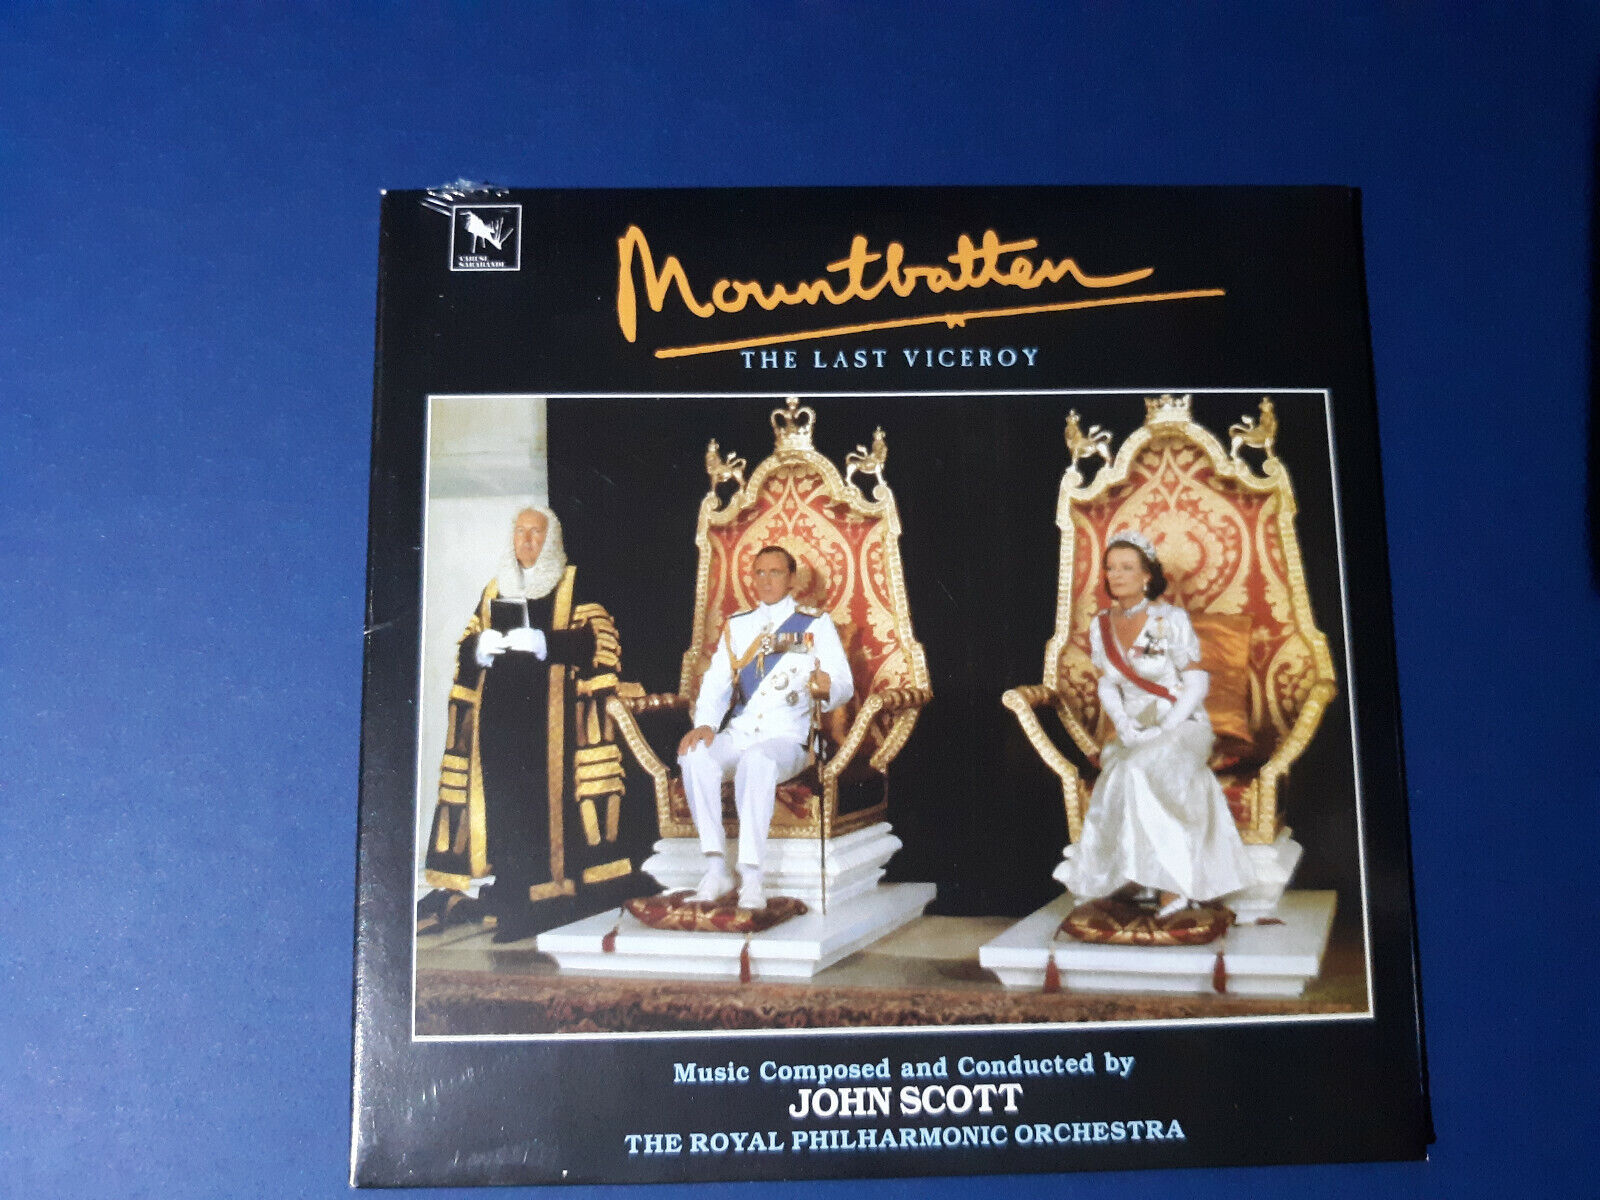 MOUNTBATTEN THE LAST VICEROY Soundtrack CD - John Scott - Varese VLE-9200-11 - $5.00